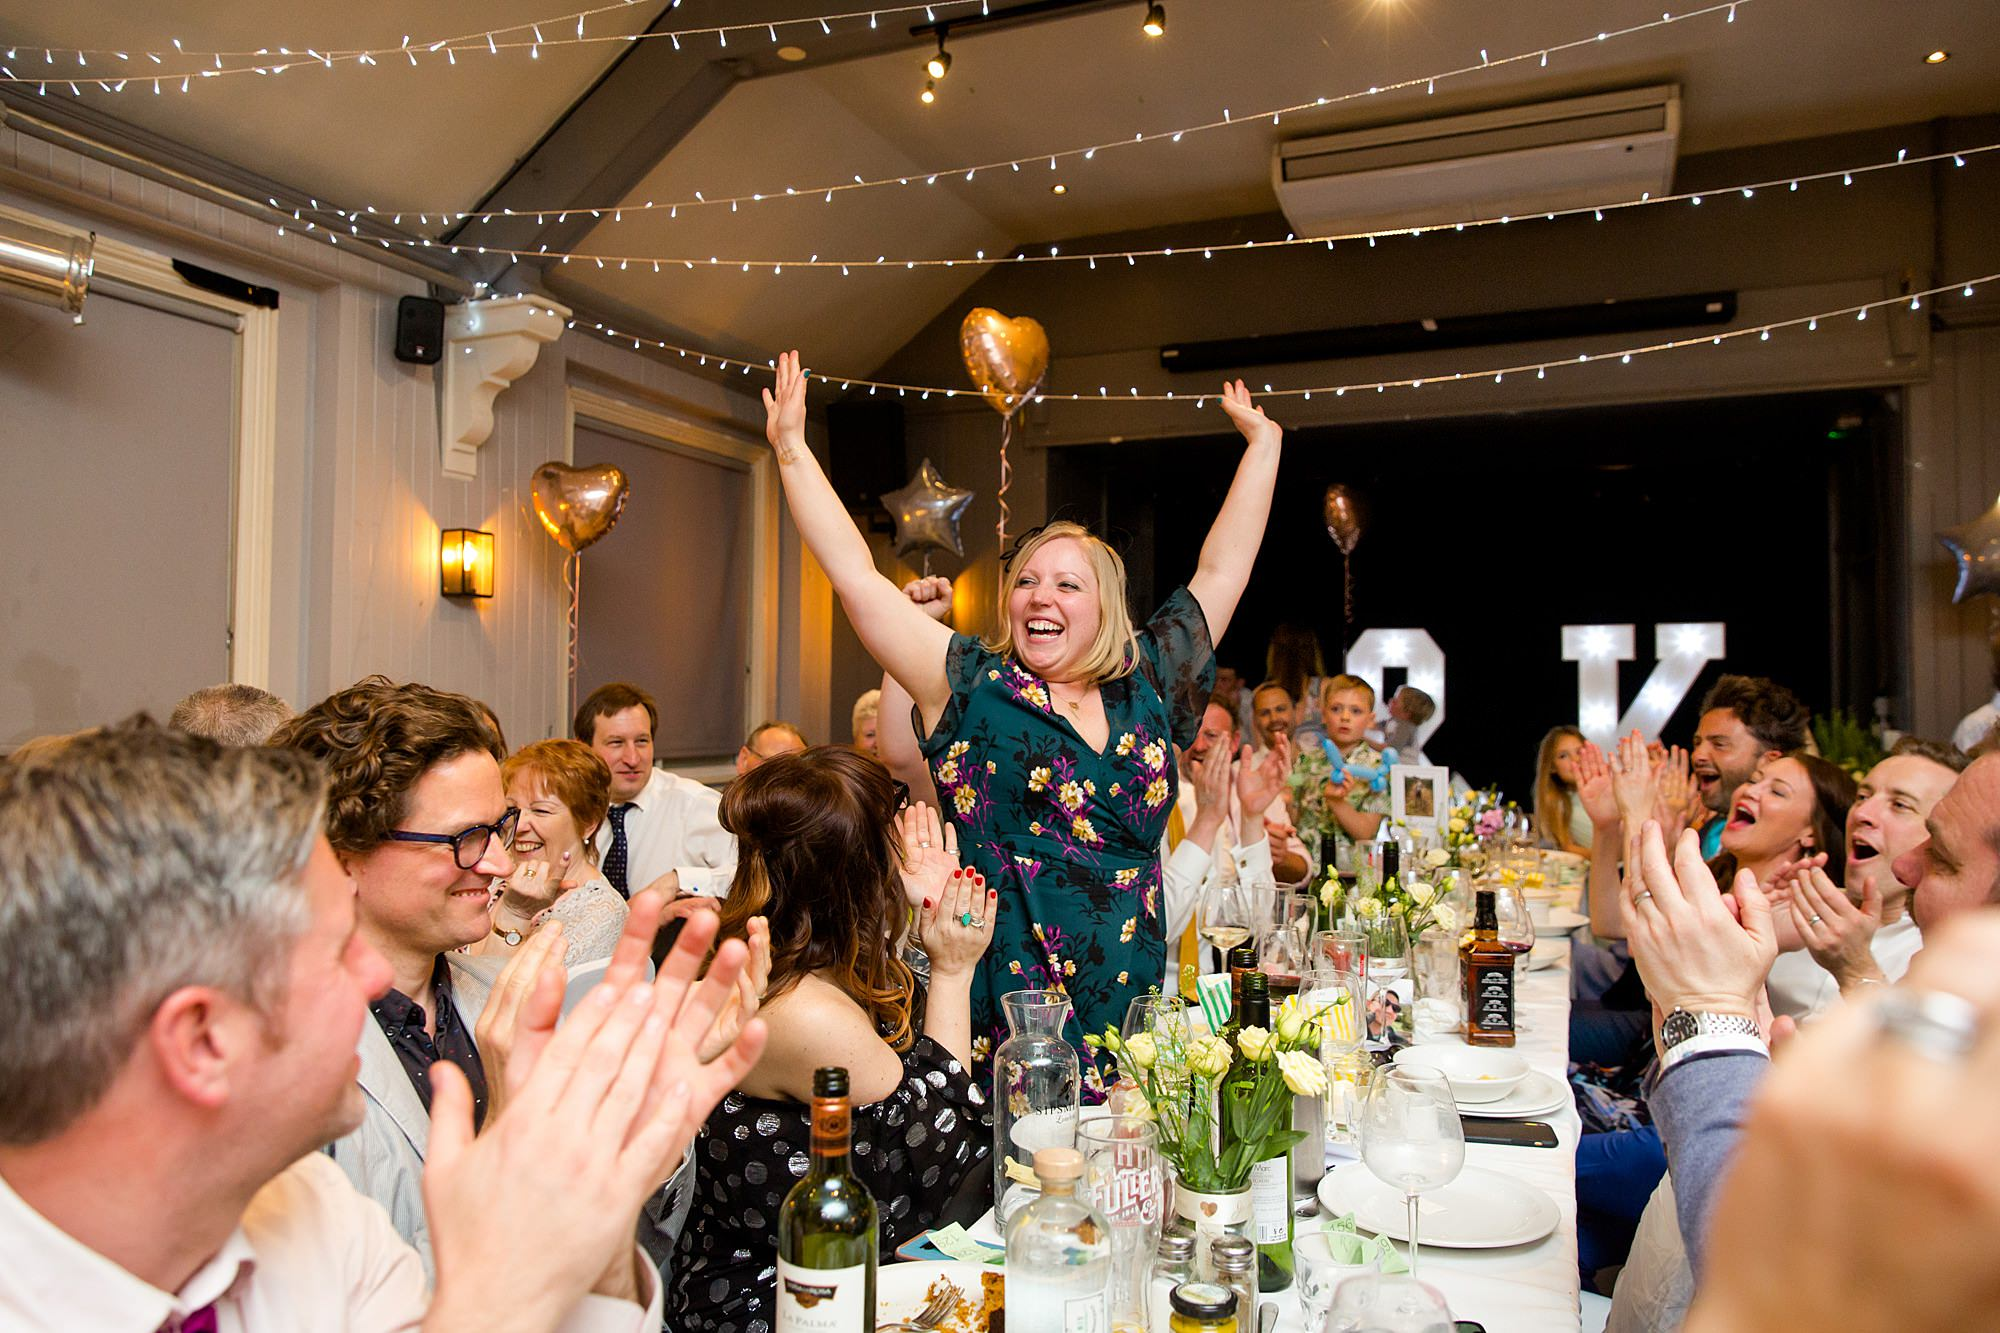 guest cheers as they win a prize at turks head pub wedding